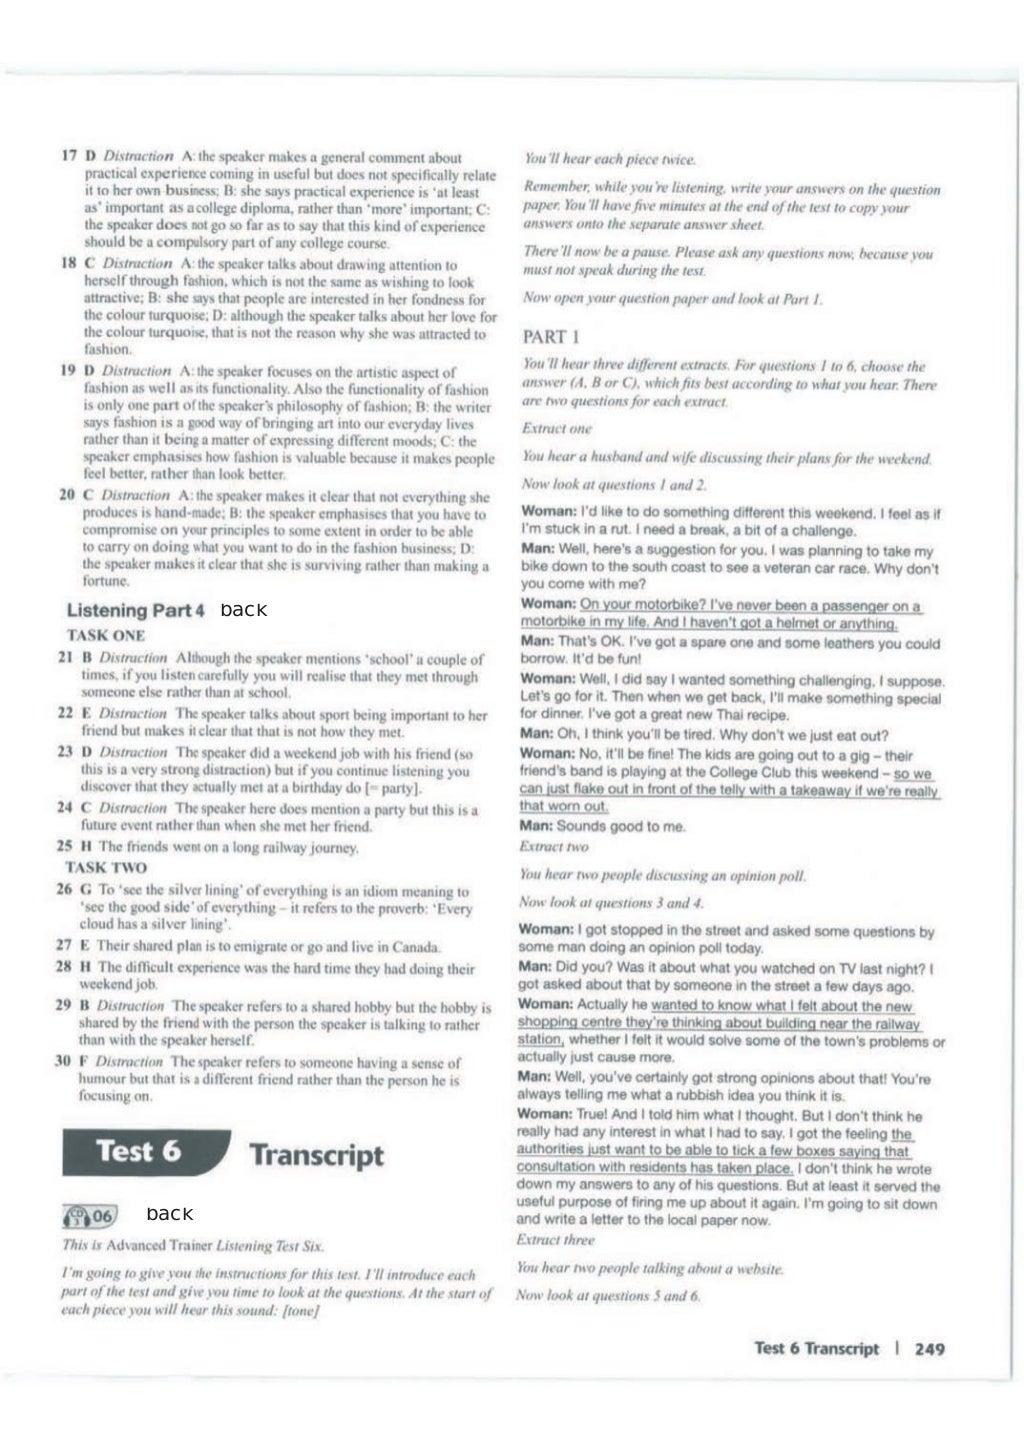 Advanced trainer 6 practice tests with answers book4joy (1) page 250